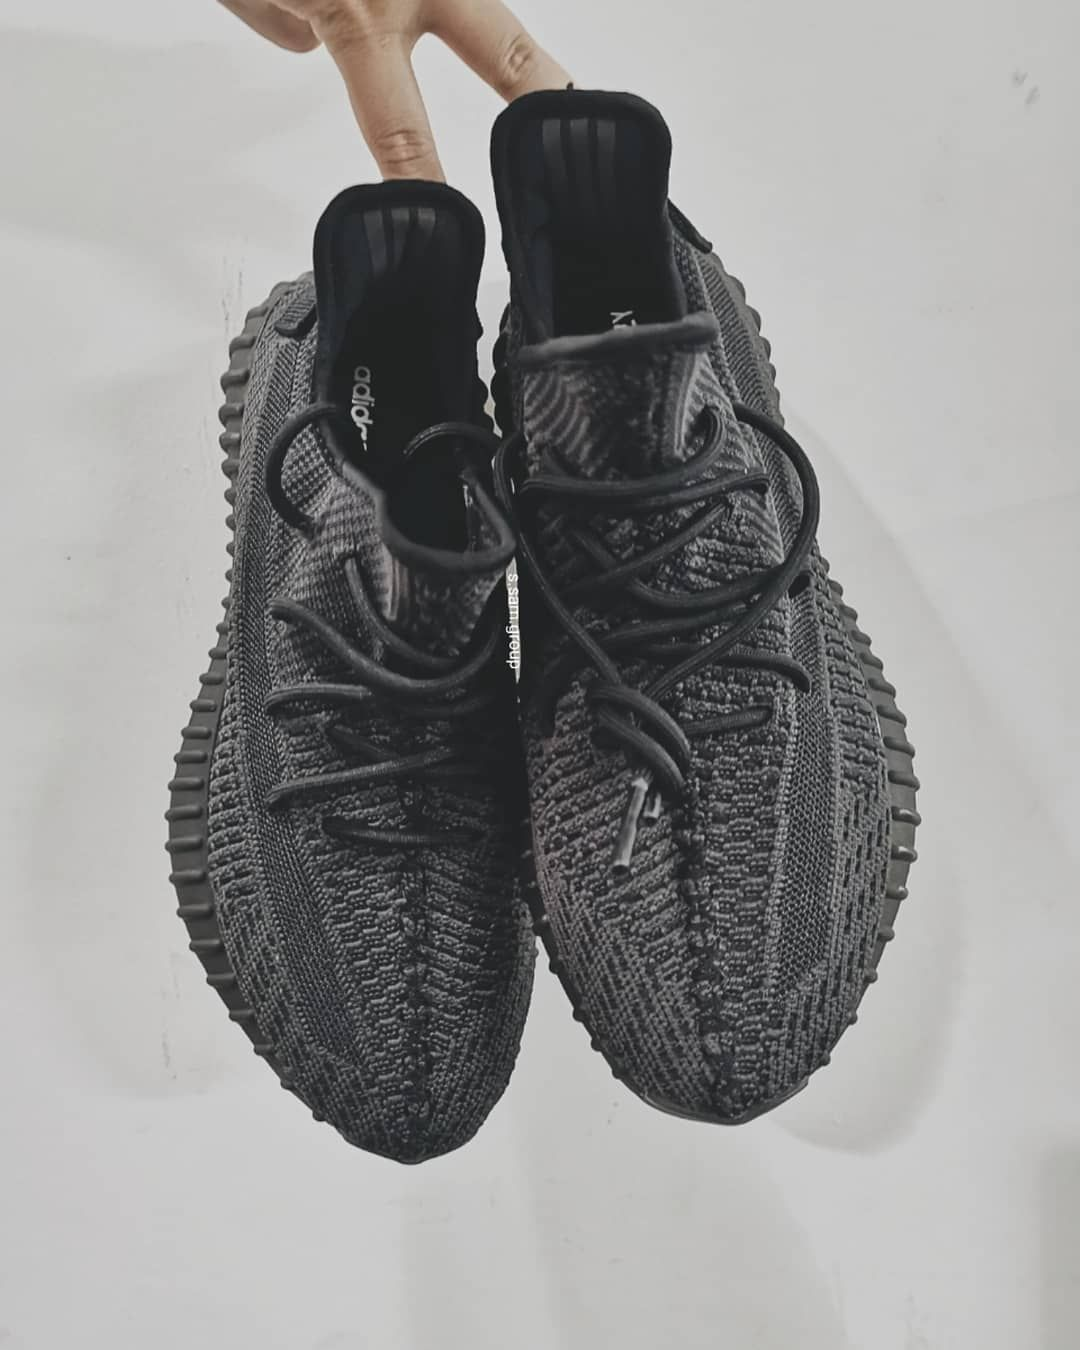 c0c4139cec8 UPDATE: The All-Black adidas YEEZY BOOST 350 V2 Could Be Releasing ...